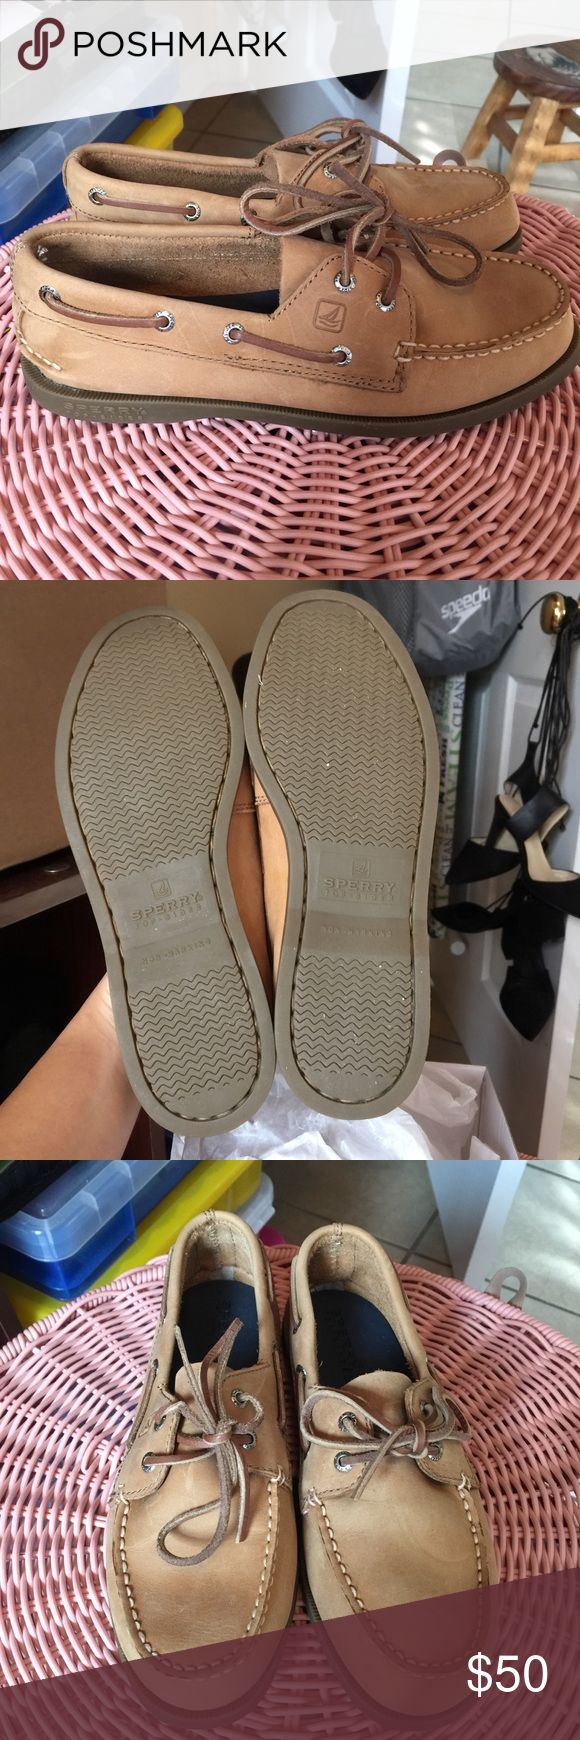 BOYS SPERRYS Like Brand New All the details are in the picture. Make me an offer. Happy Poshing! Sperry Top-Sider Shoes Dress Shoes